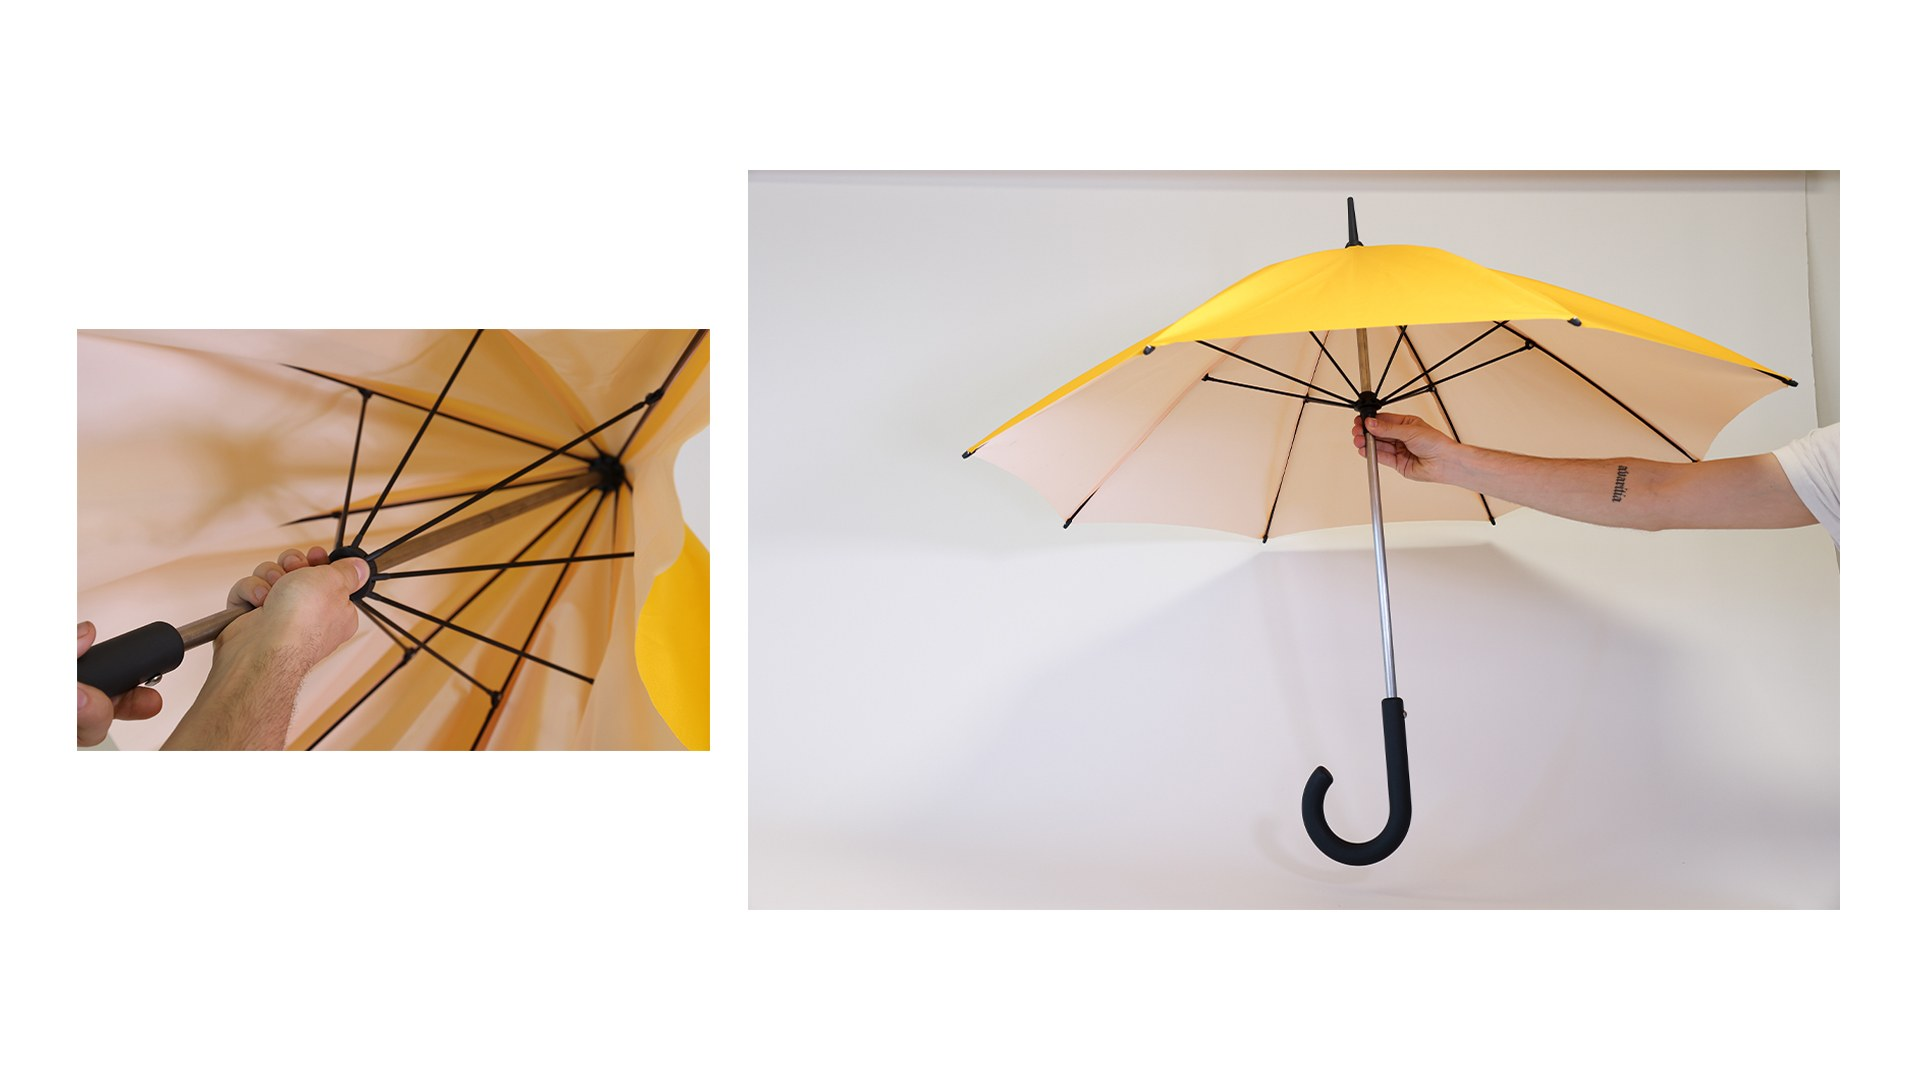 The final umbrella with the removable canopy included.